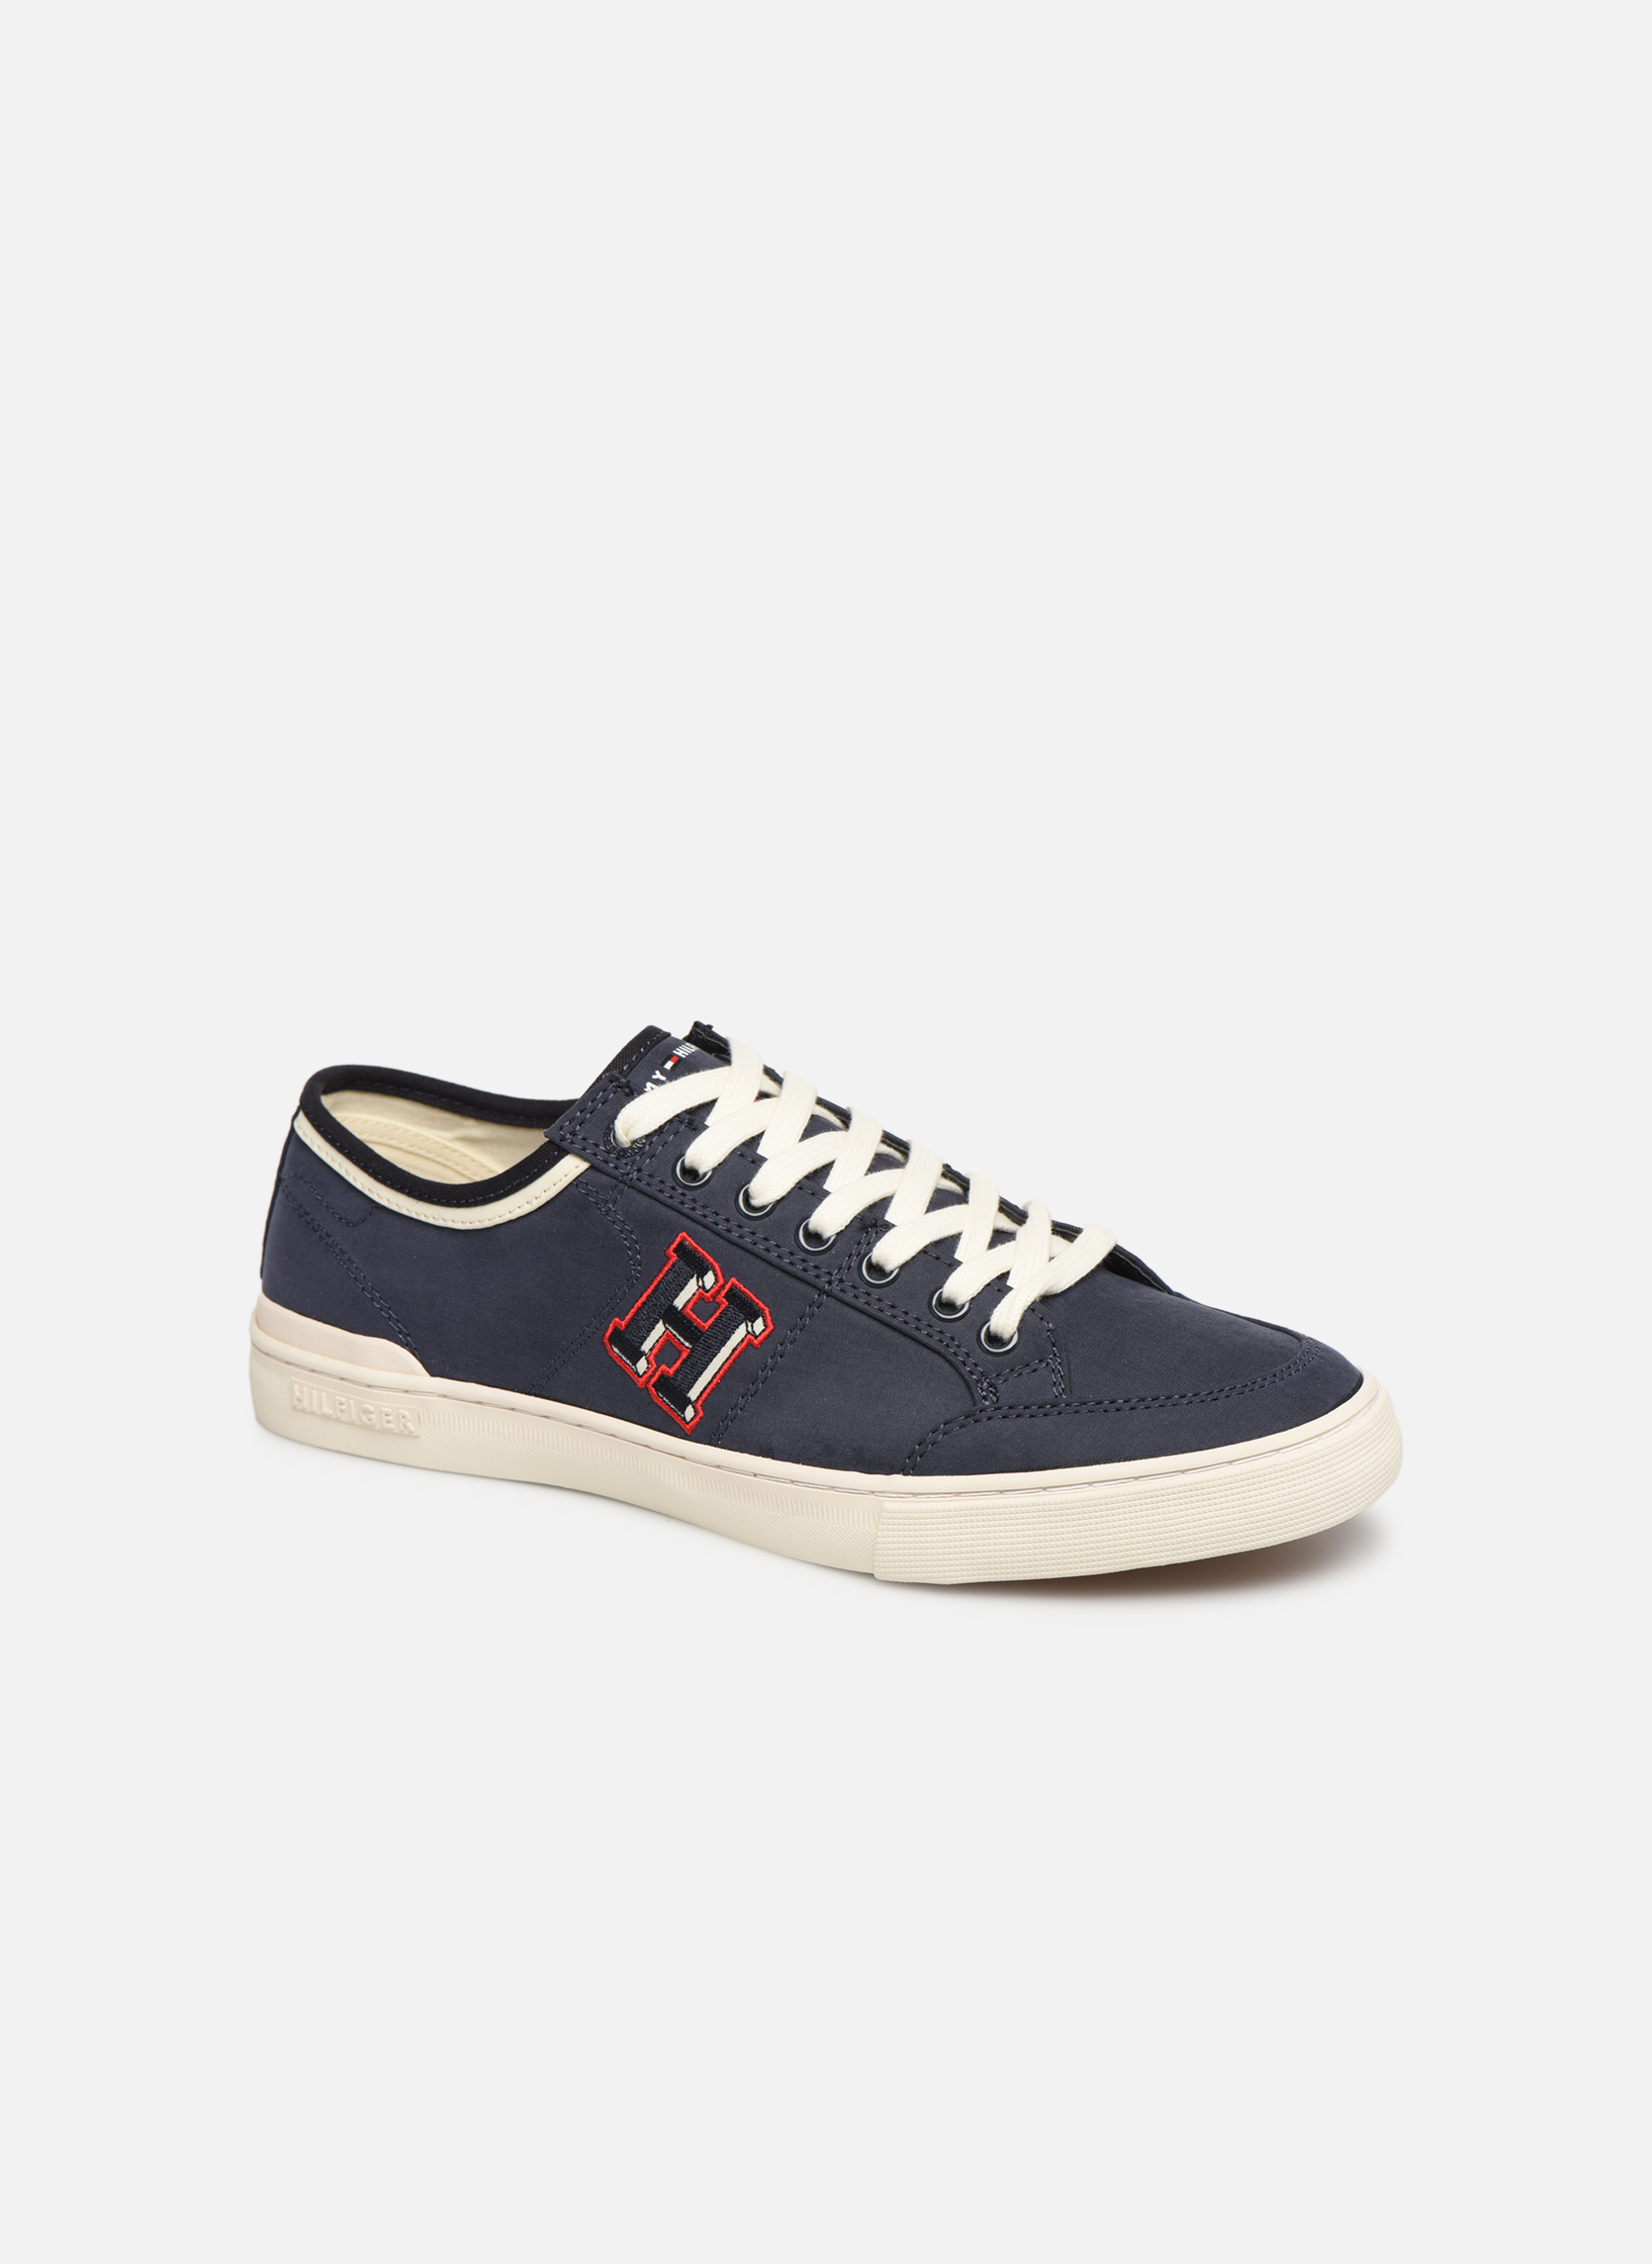 Sneakers Tommy Hilfiger Blauw